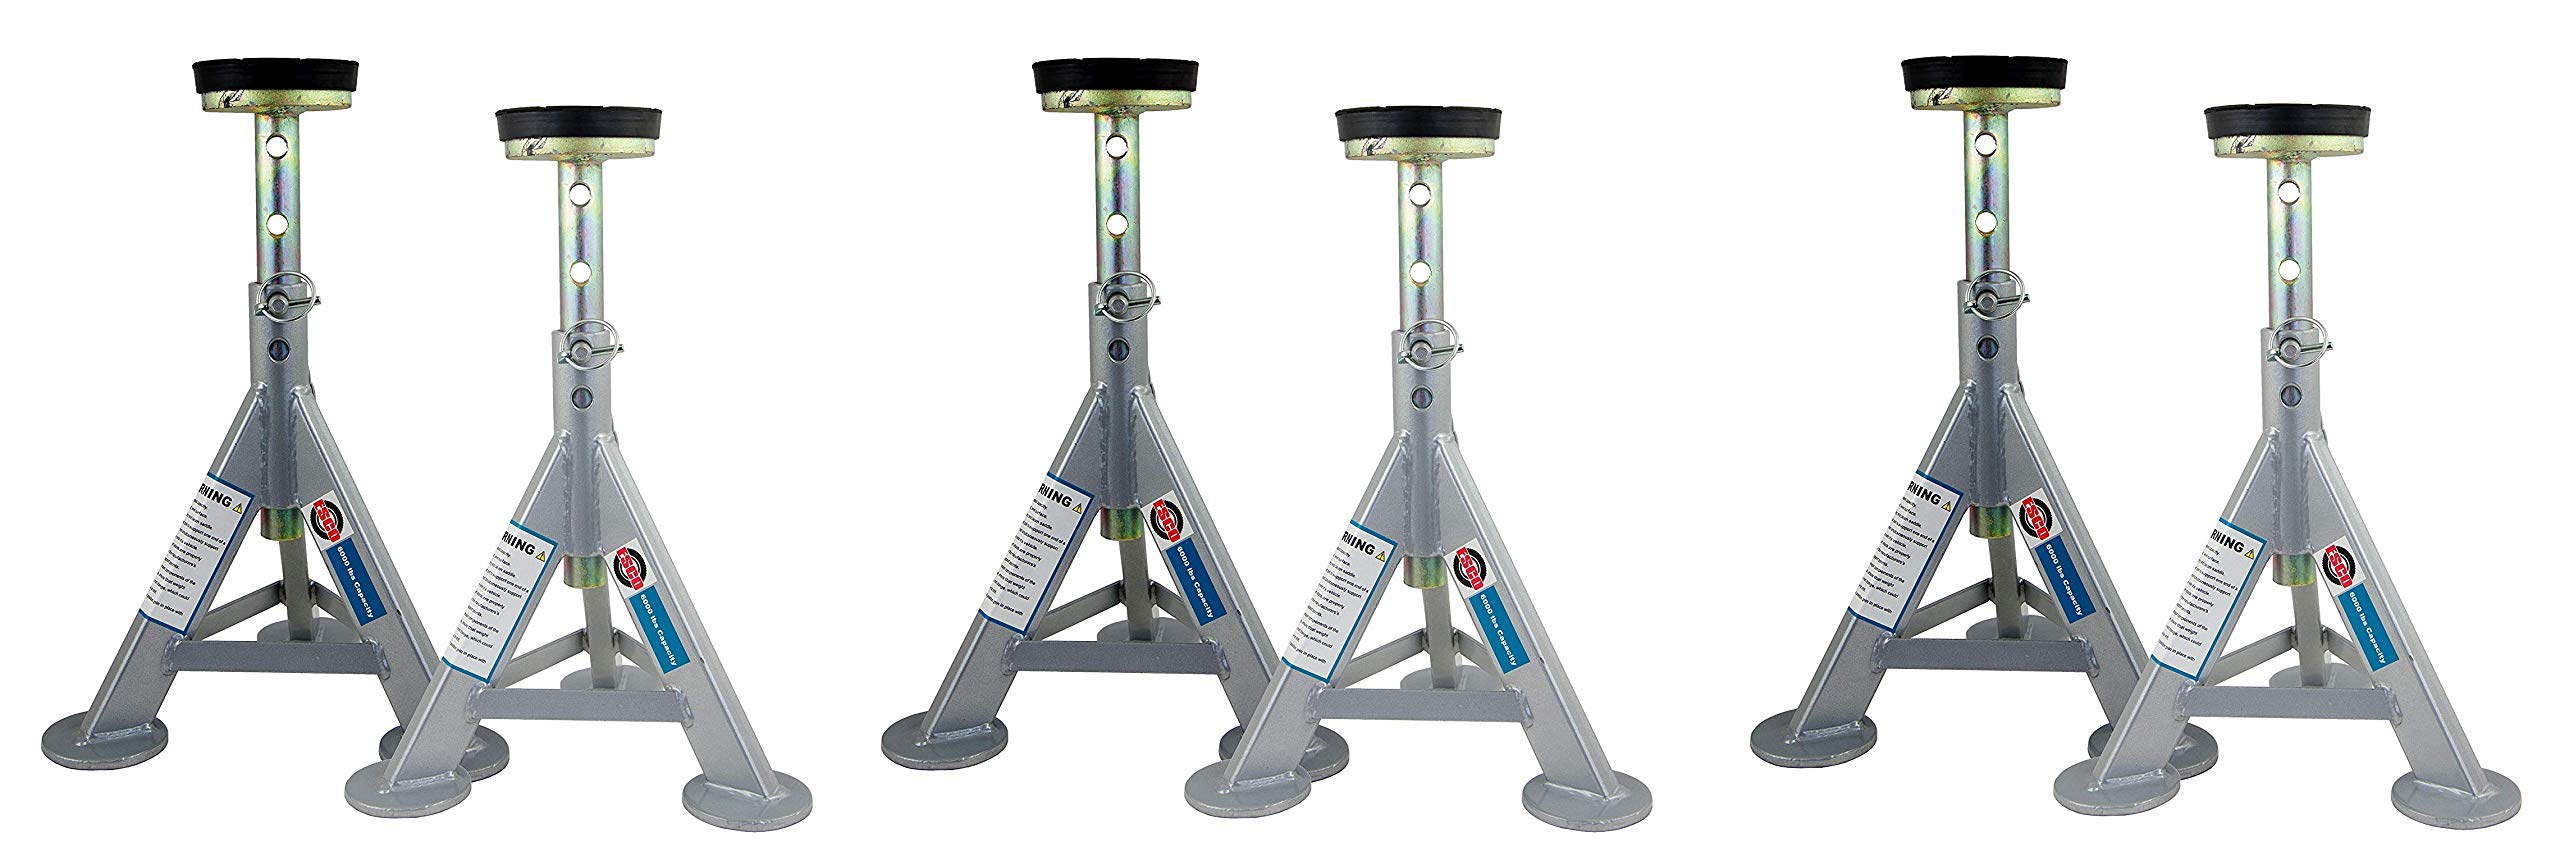 ESCO 10498 Jack Stands, 3 Ton Capacity, Pair of 2 Stands (Pack of 2) (3 X Pack of 2)